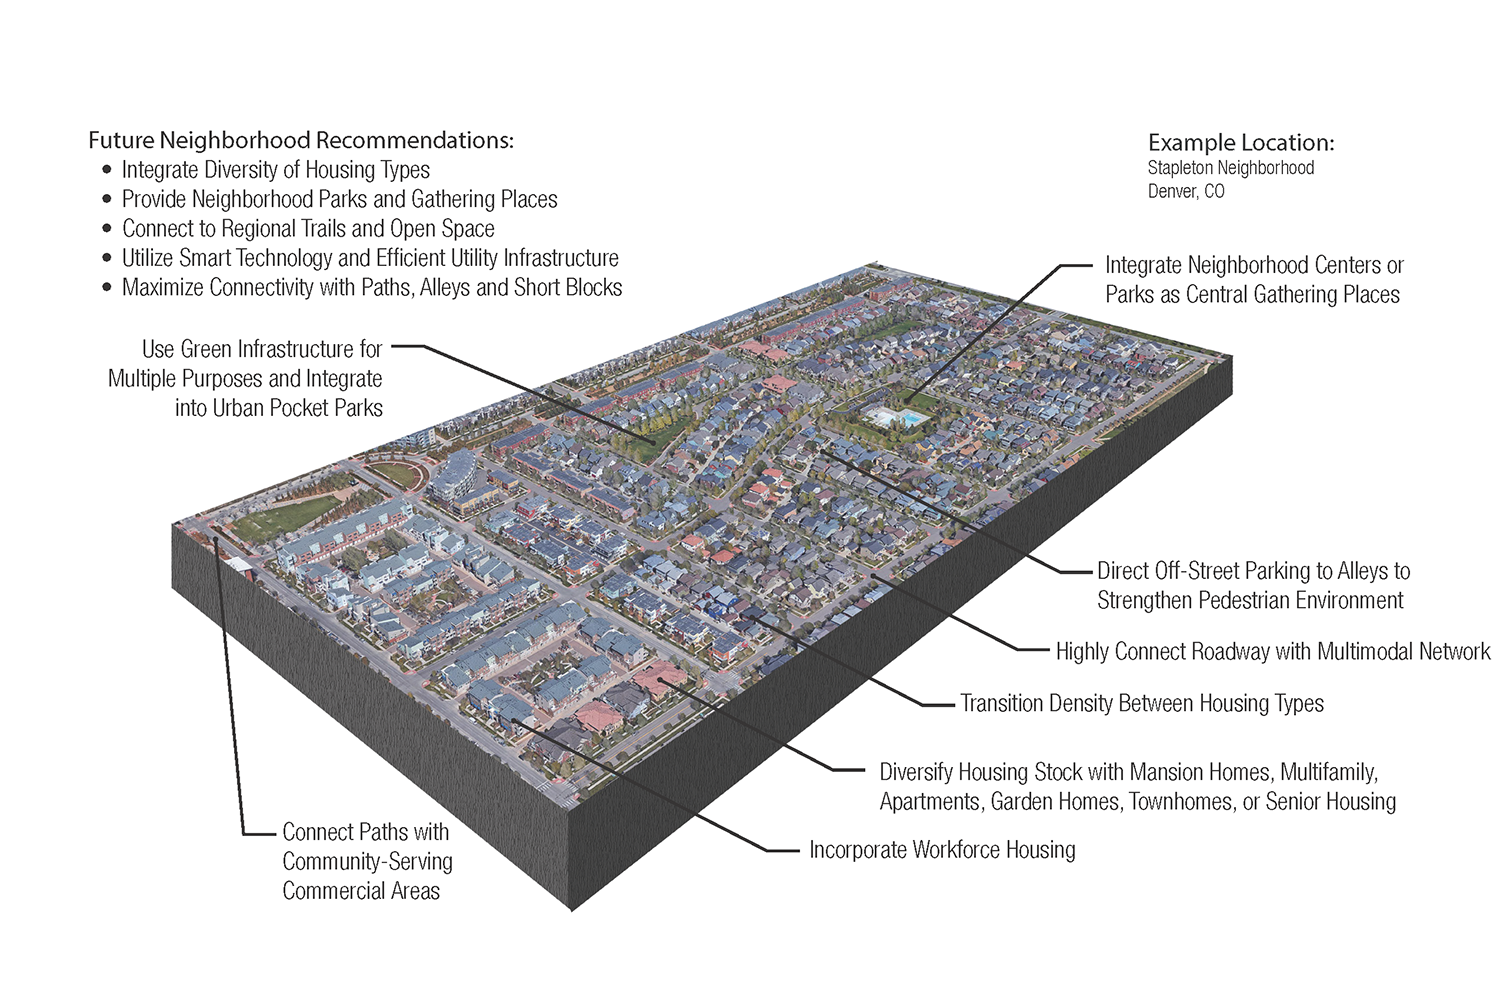 map showing future neighborhood recommendations